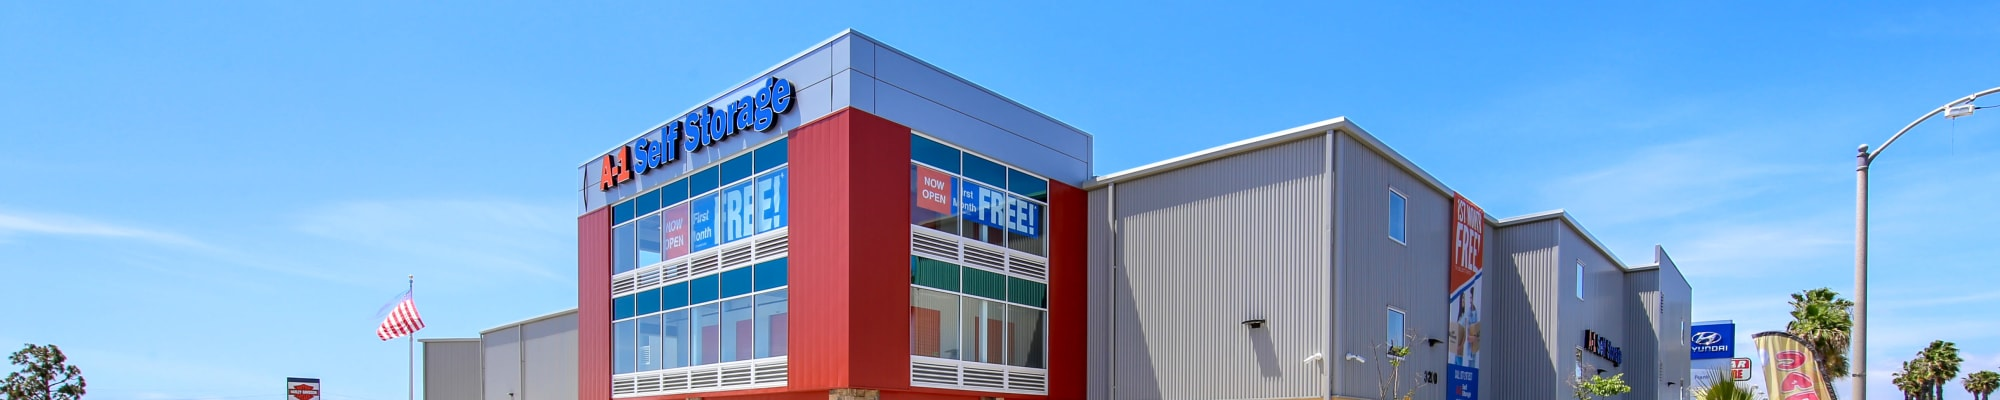 Unit sizes and prices at A-1 Self Storage in Chula Vista, California